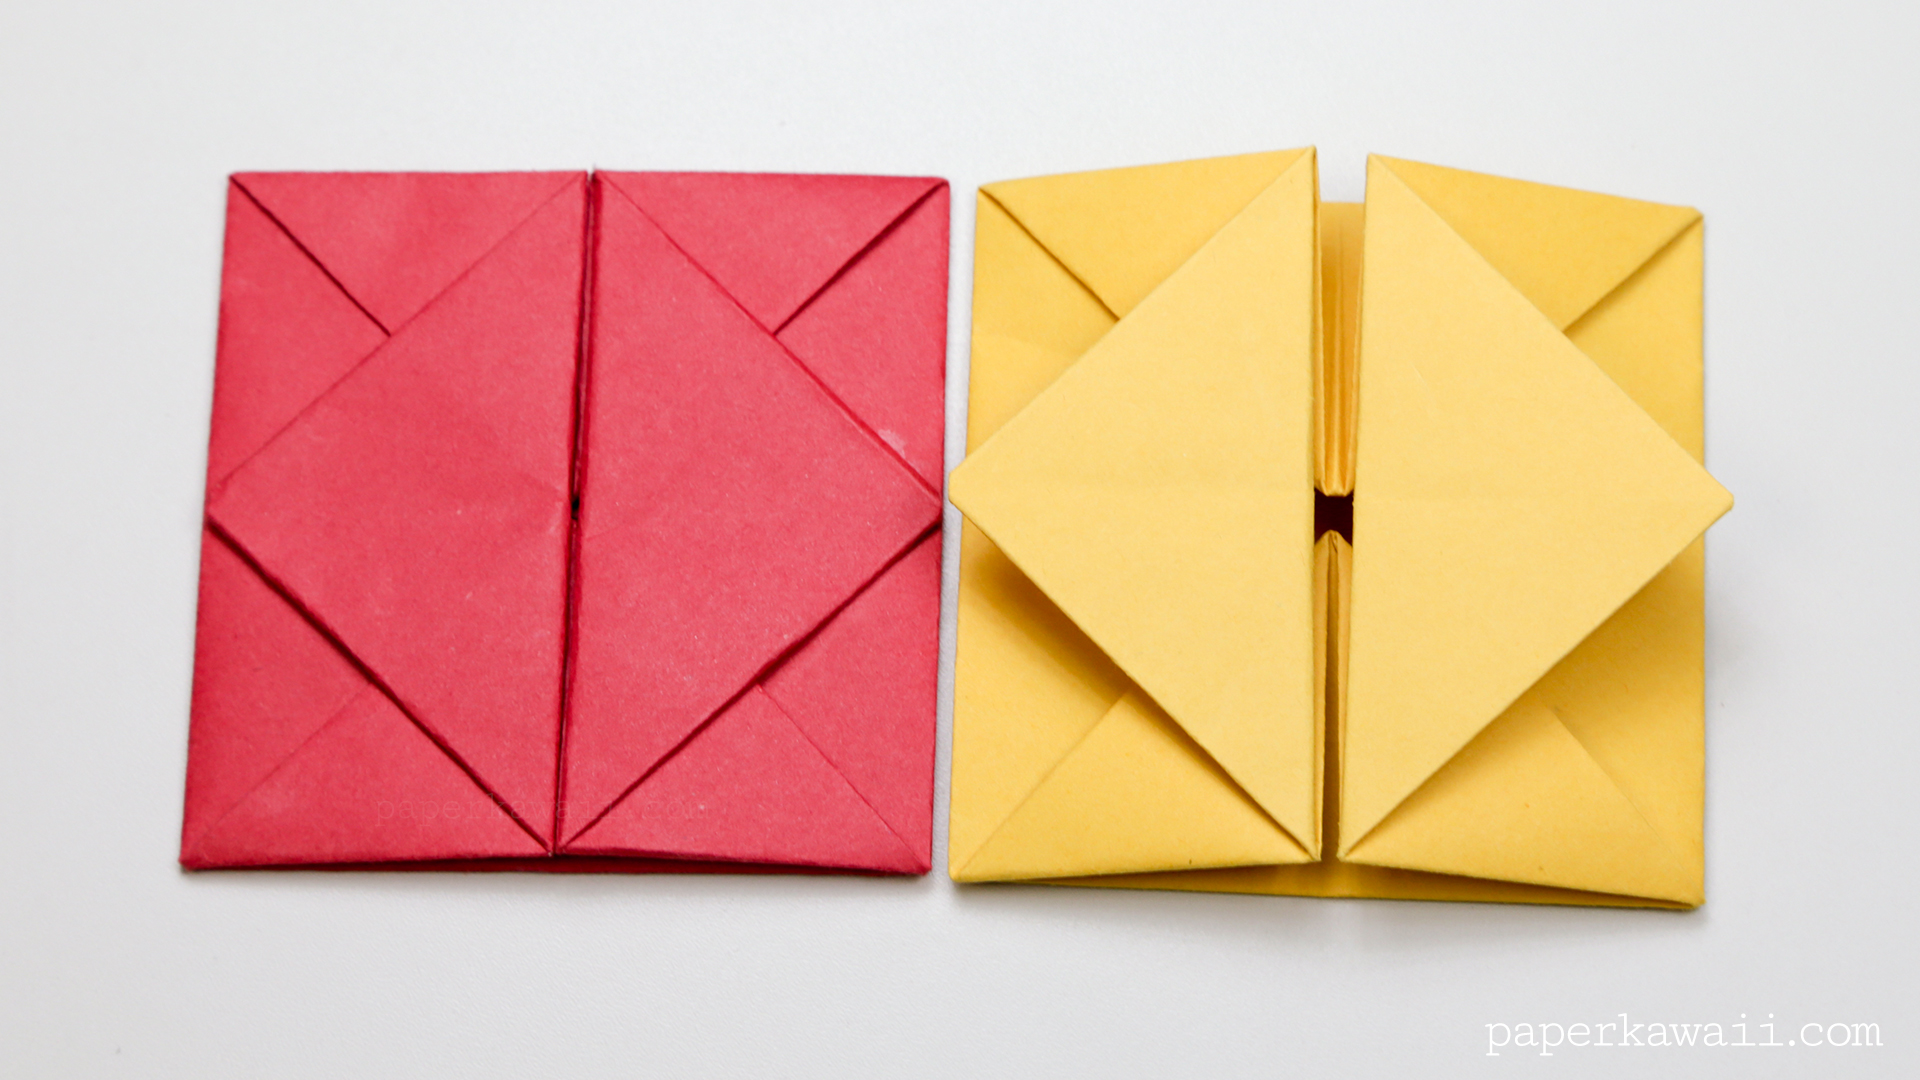 Origami Envelope Box Instructions - Paper Kawaii